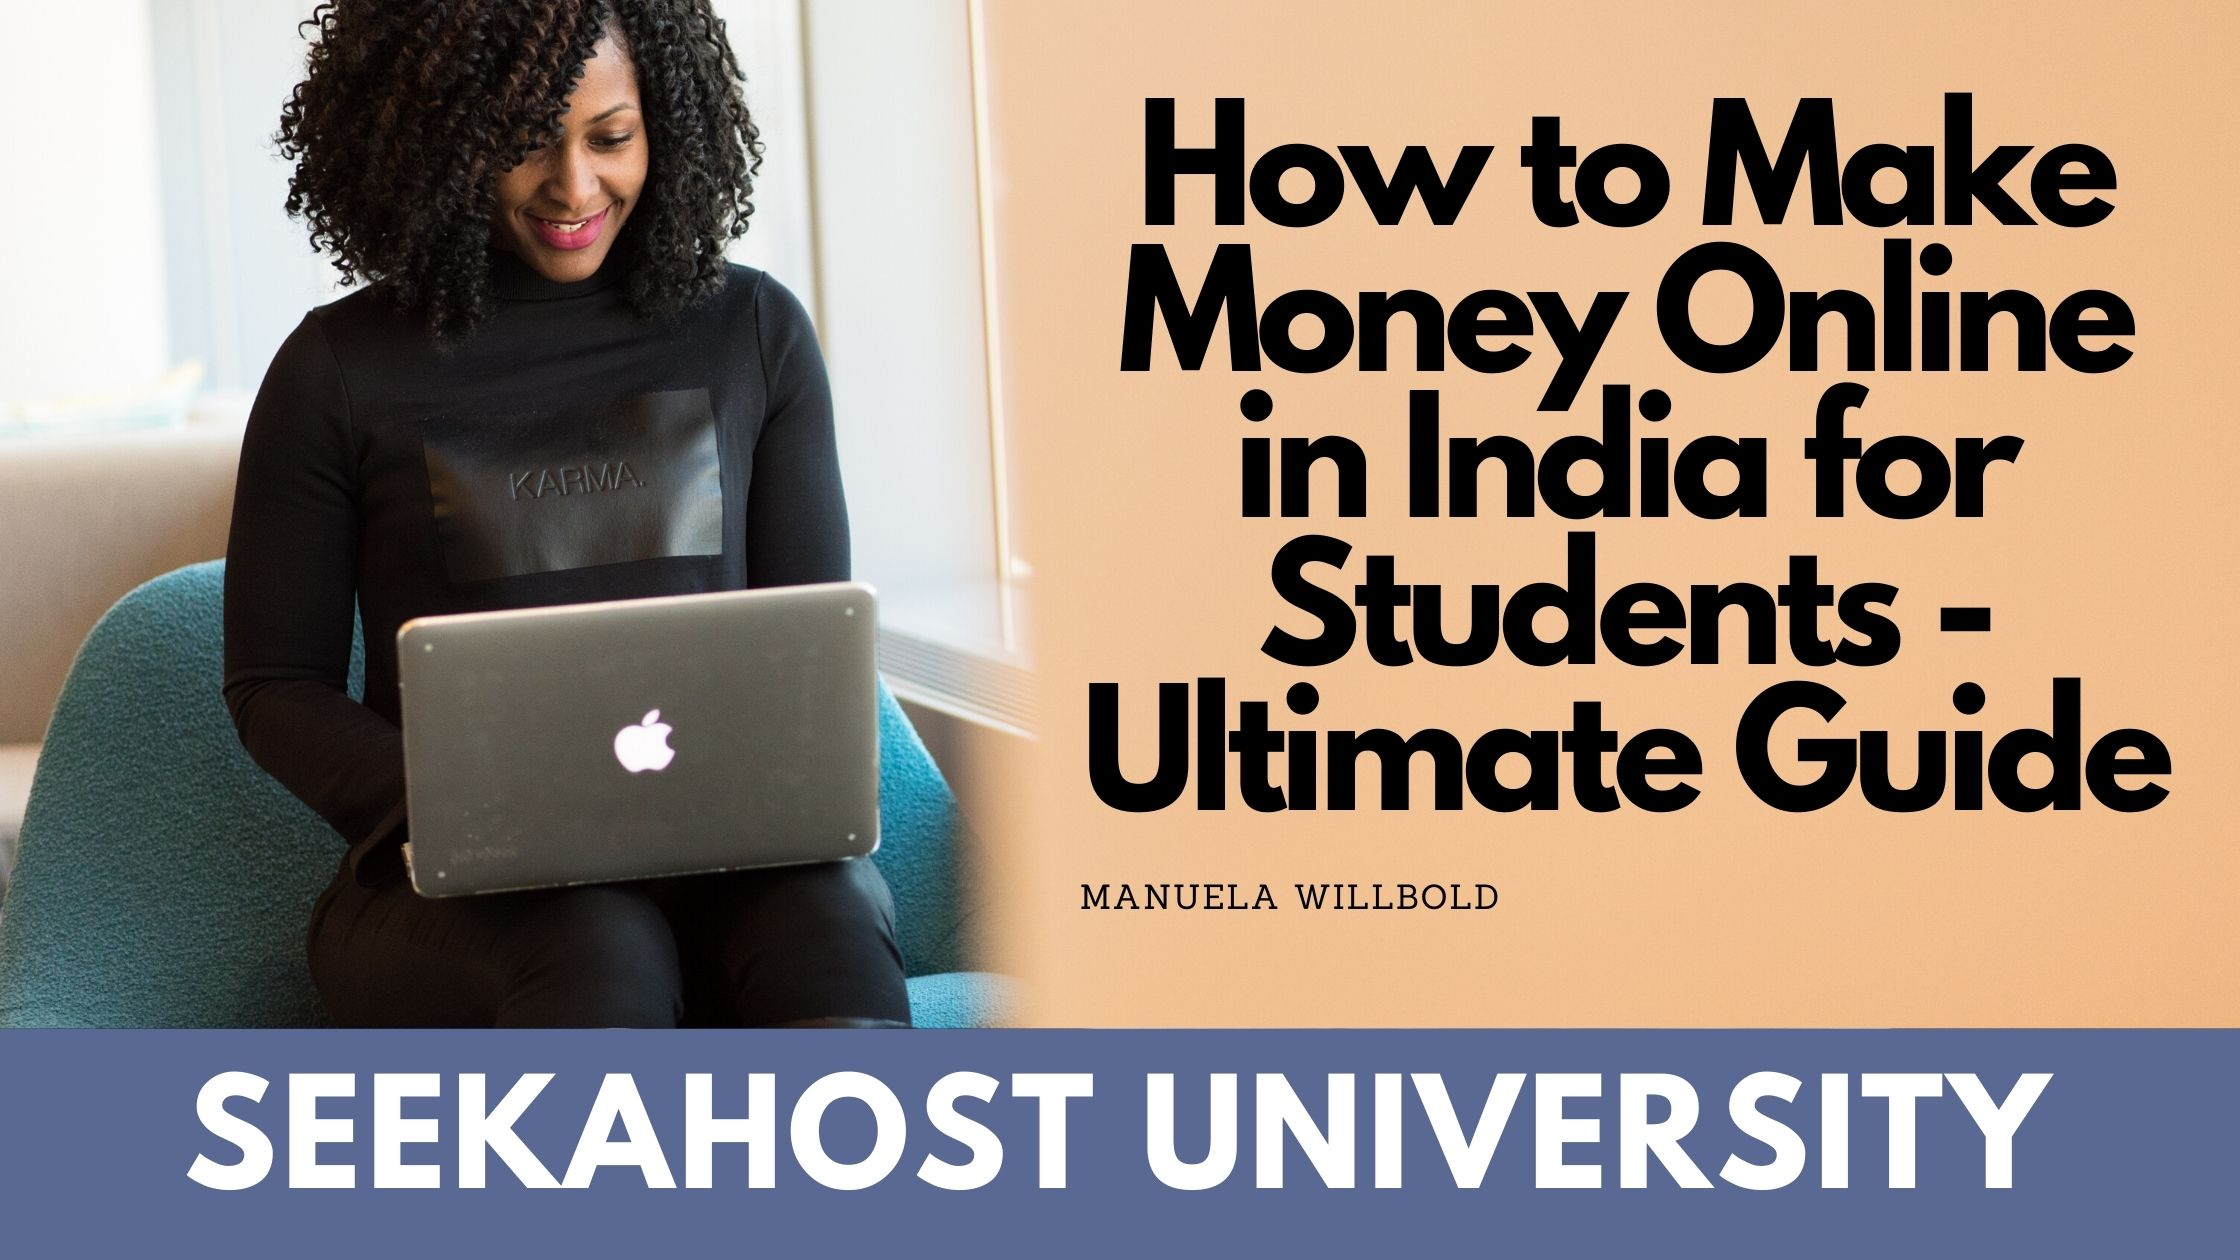 how-to-make-money-online-in-India-for-students